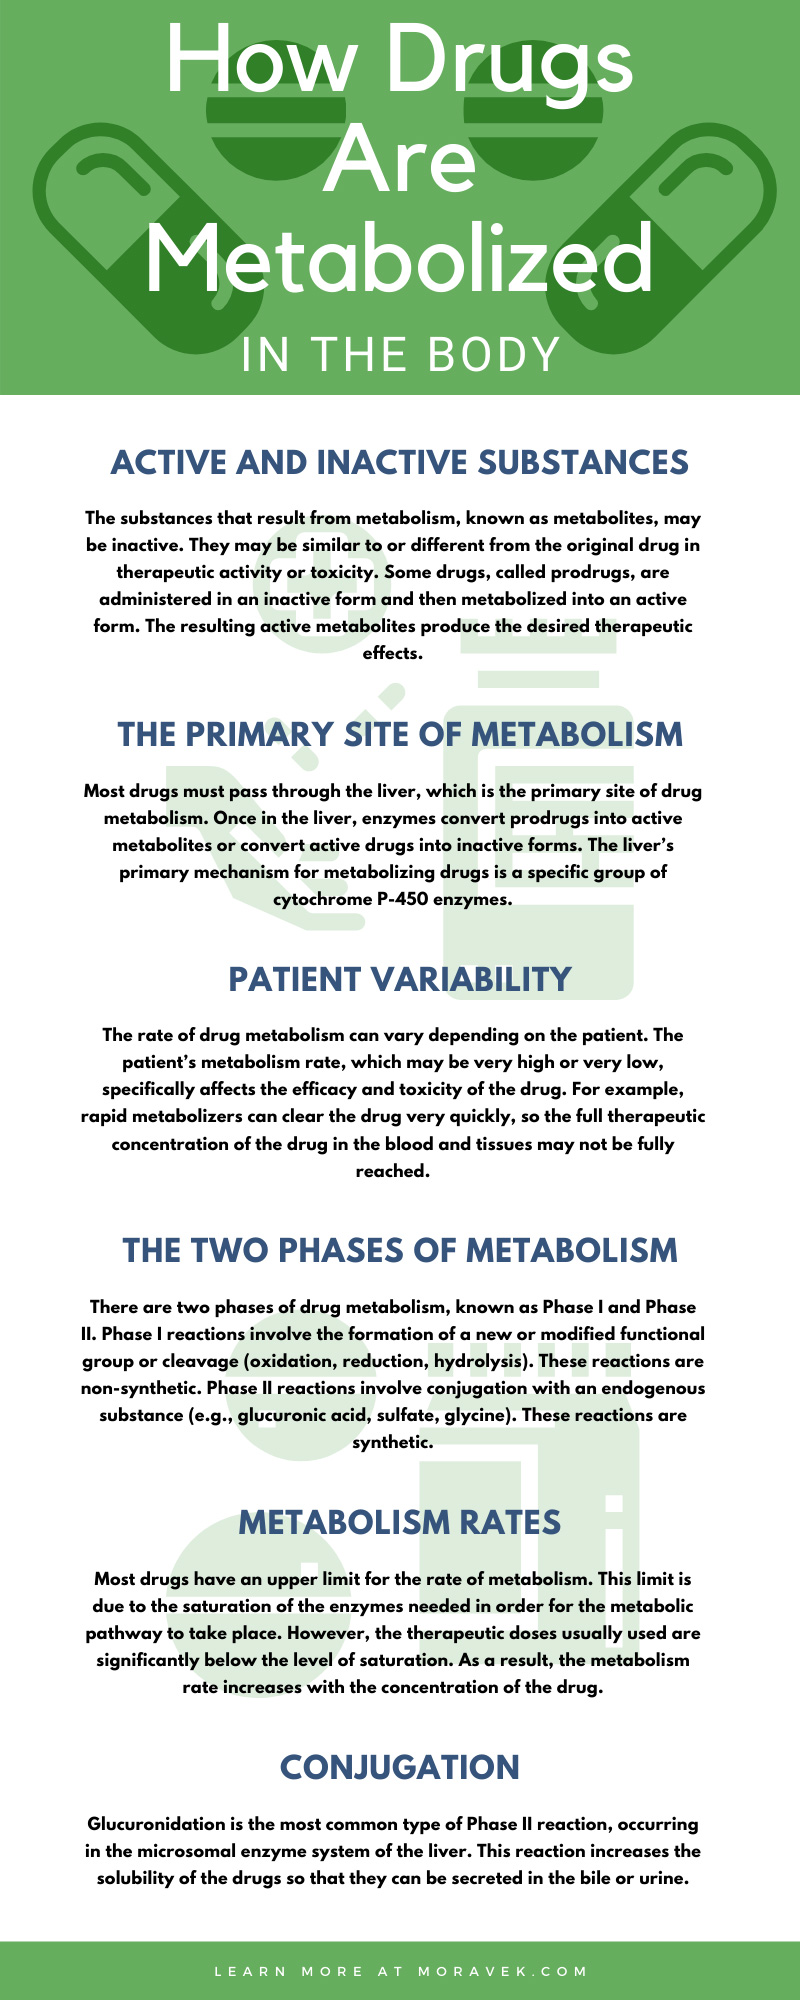 How Drugs Are Metabolized in the Body